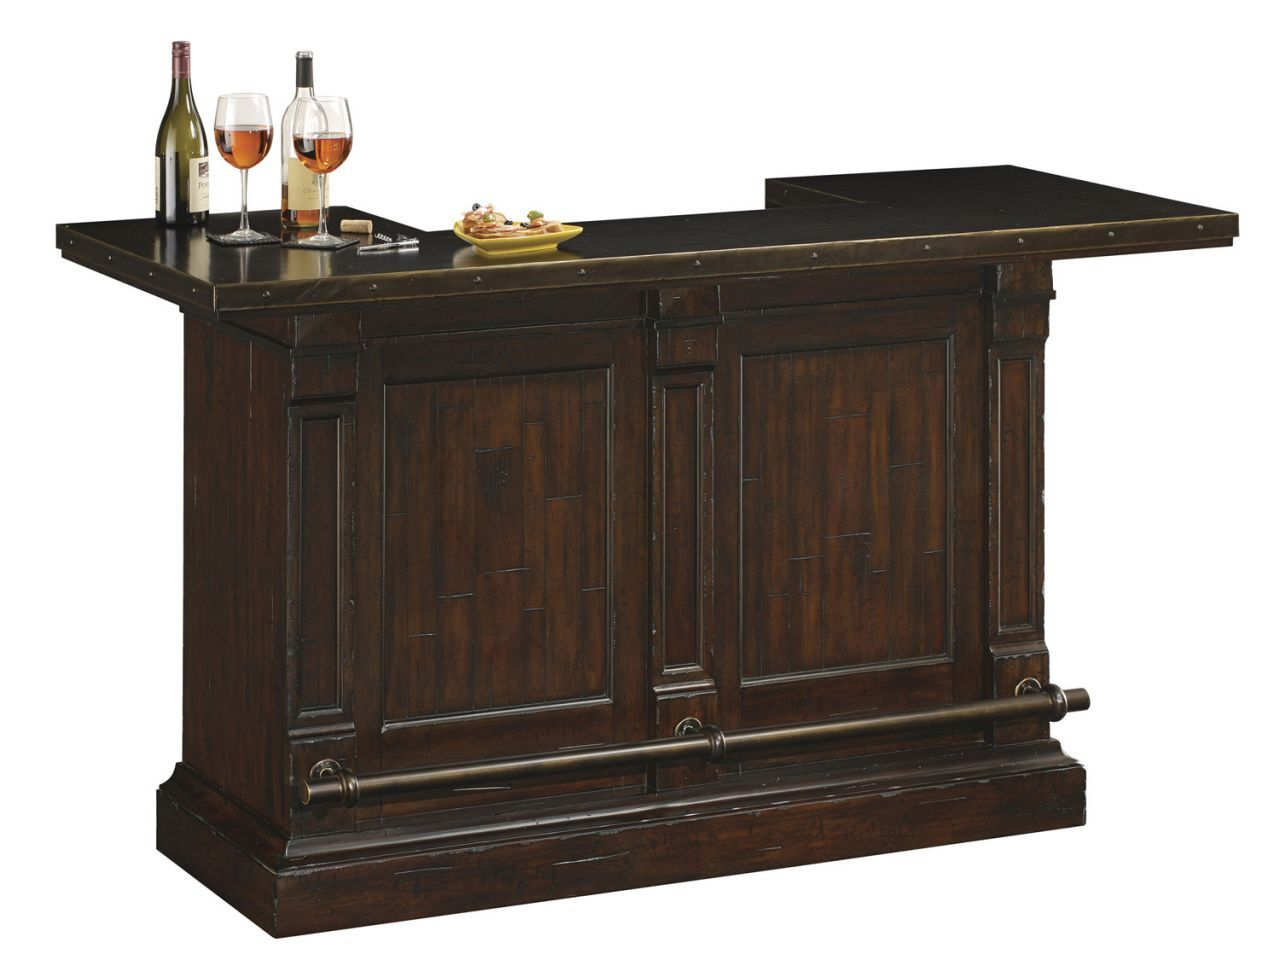 stand alone bar, simple yet sophistocated | Home Decor: dining ...